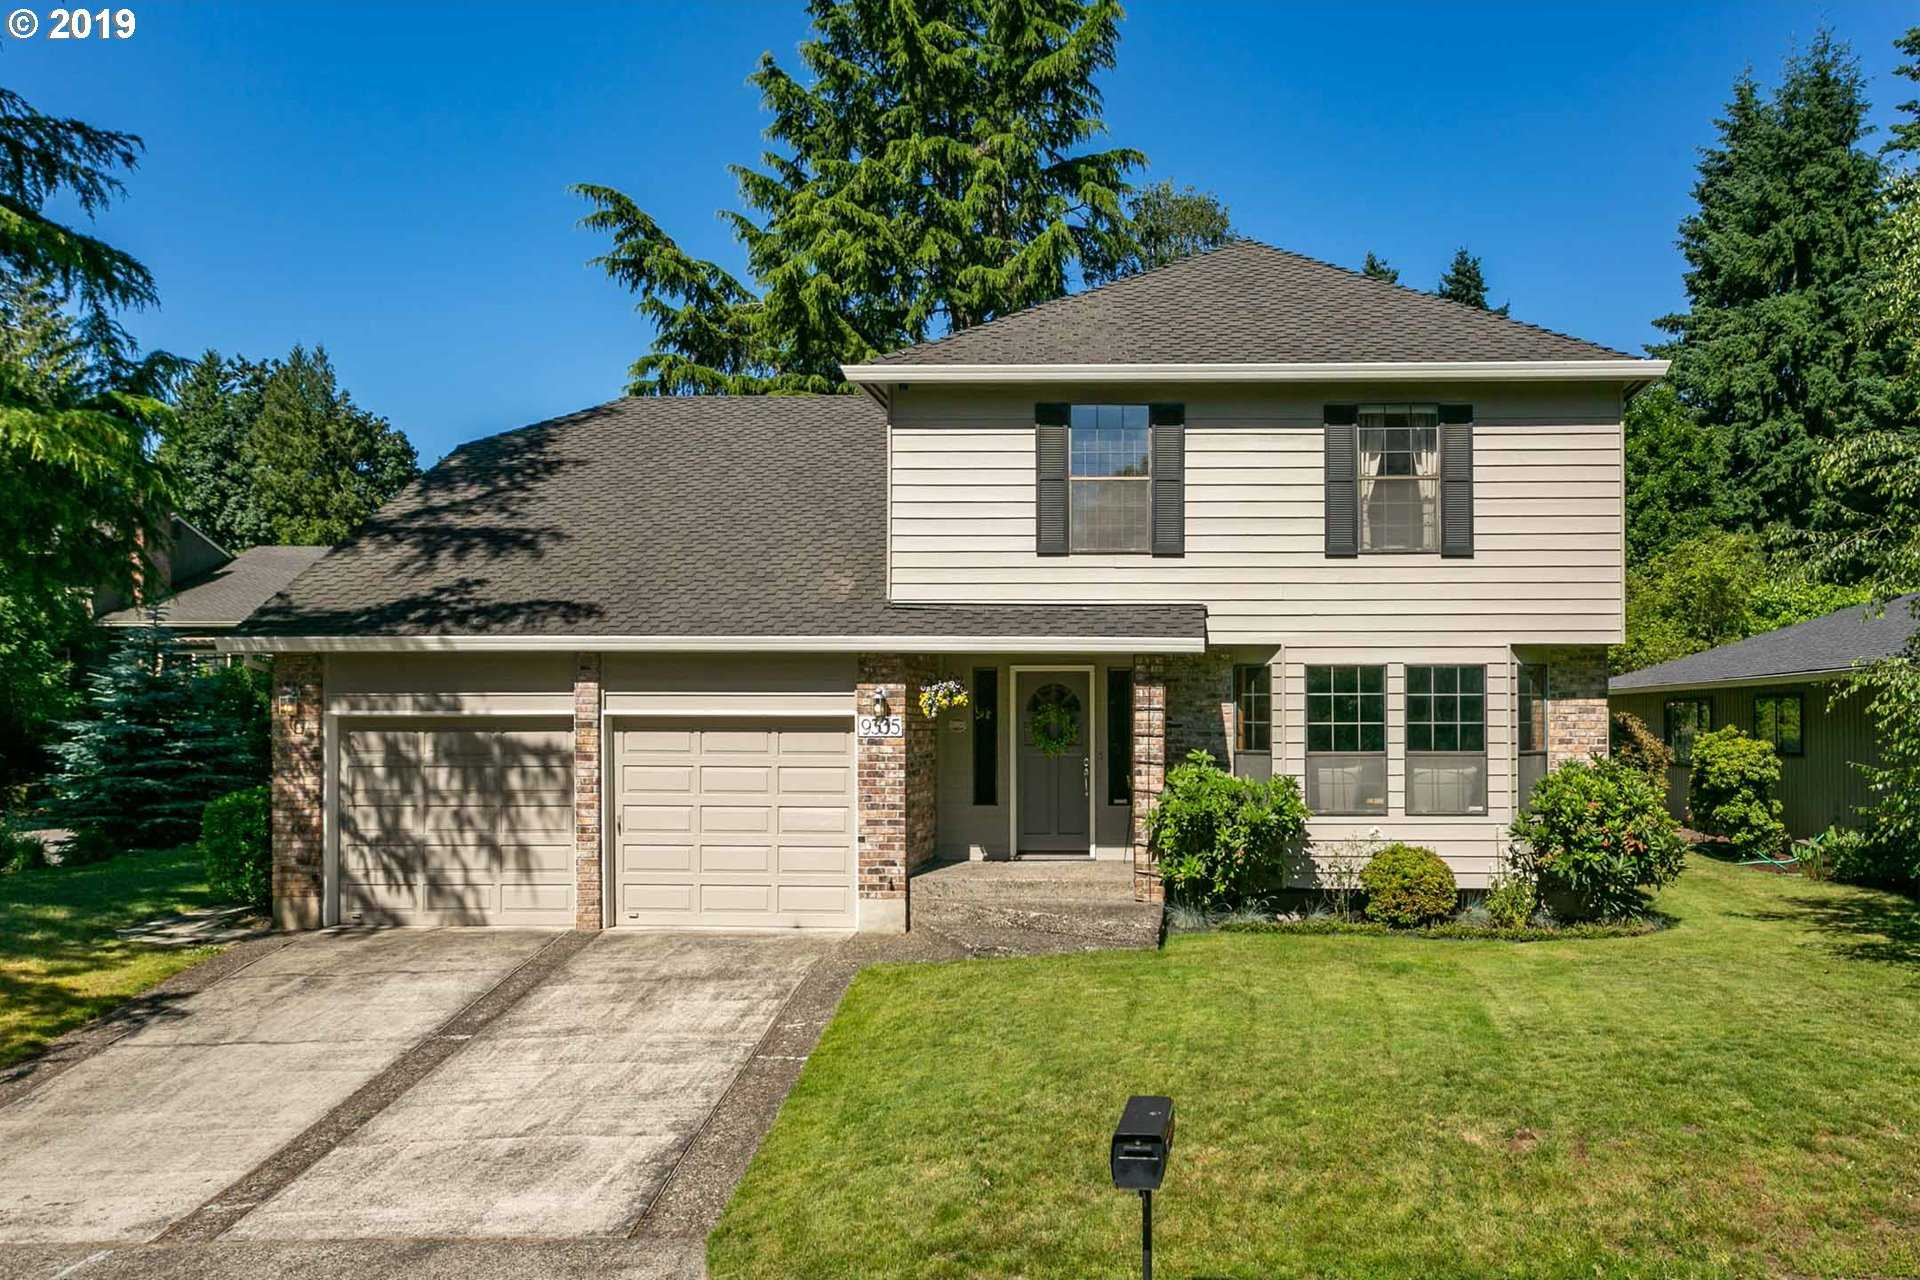 $475,000 - 5Br/3Ba -  for Sale in Tigard